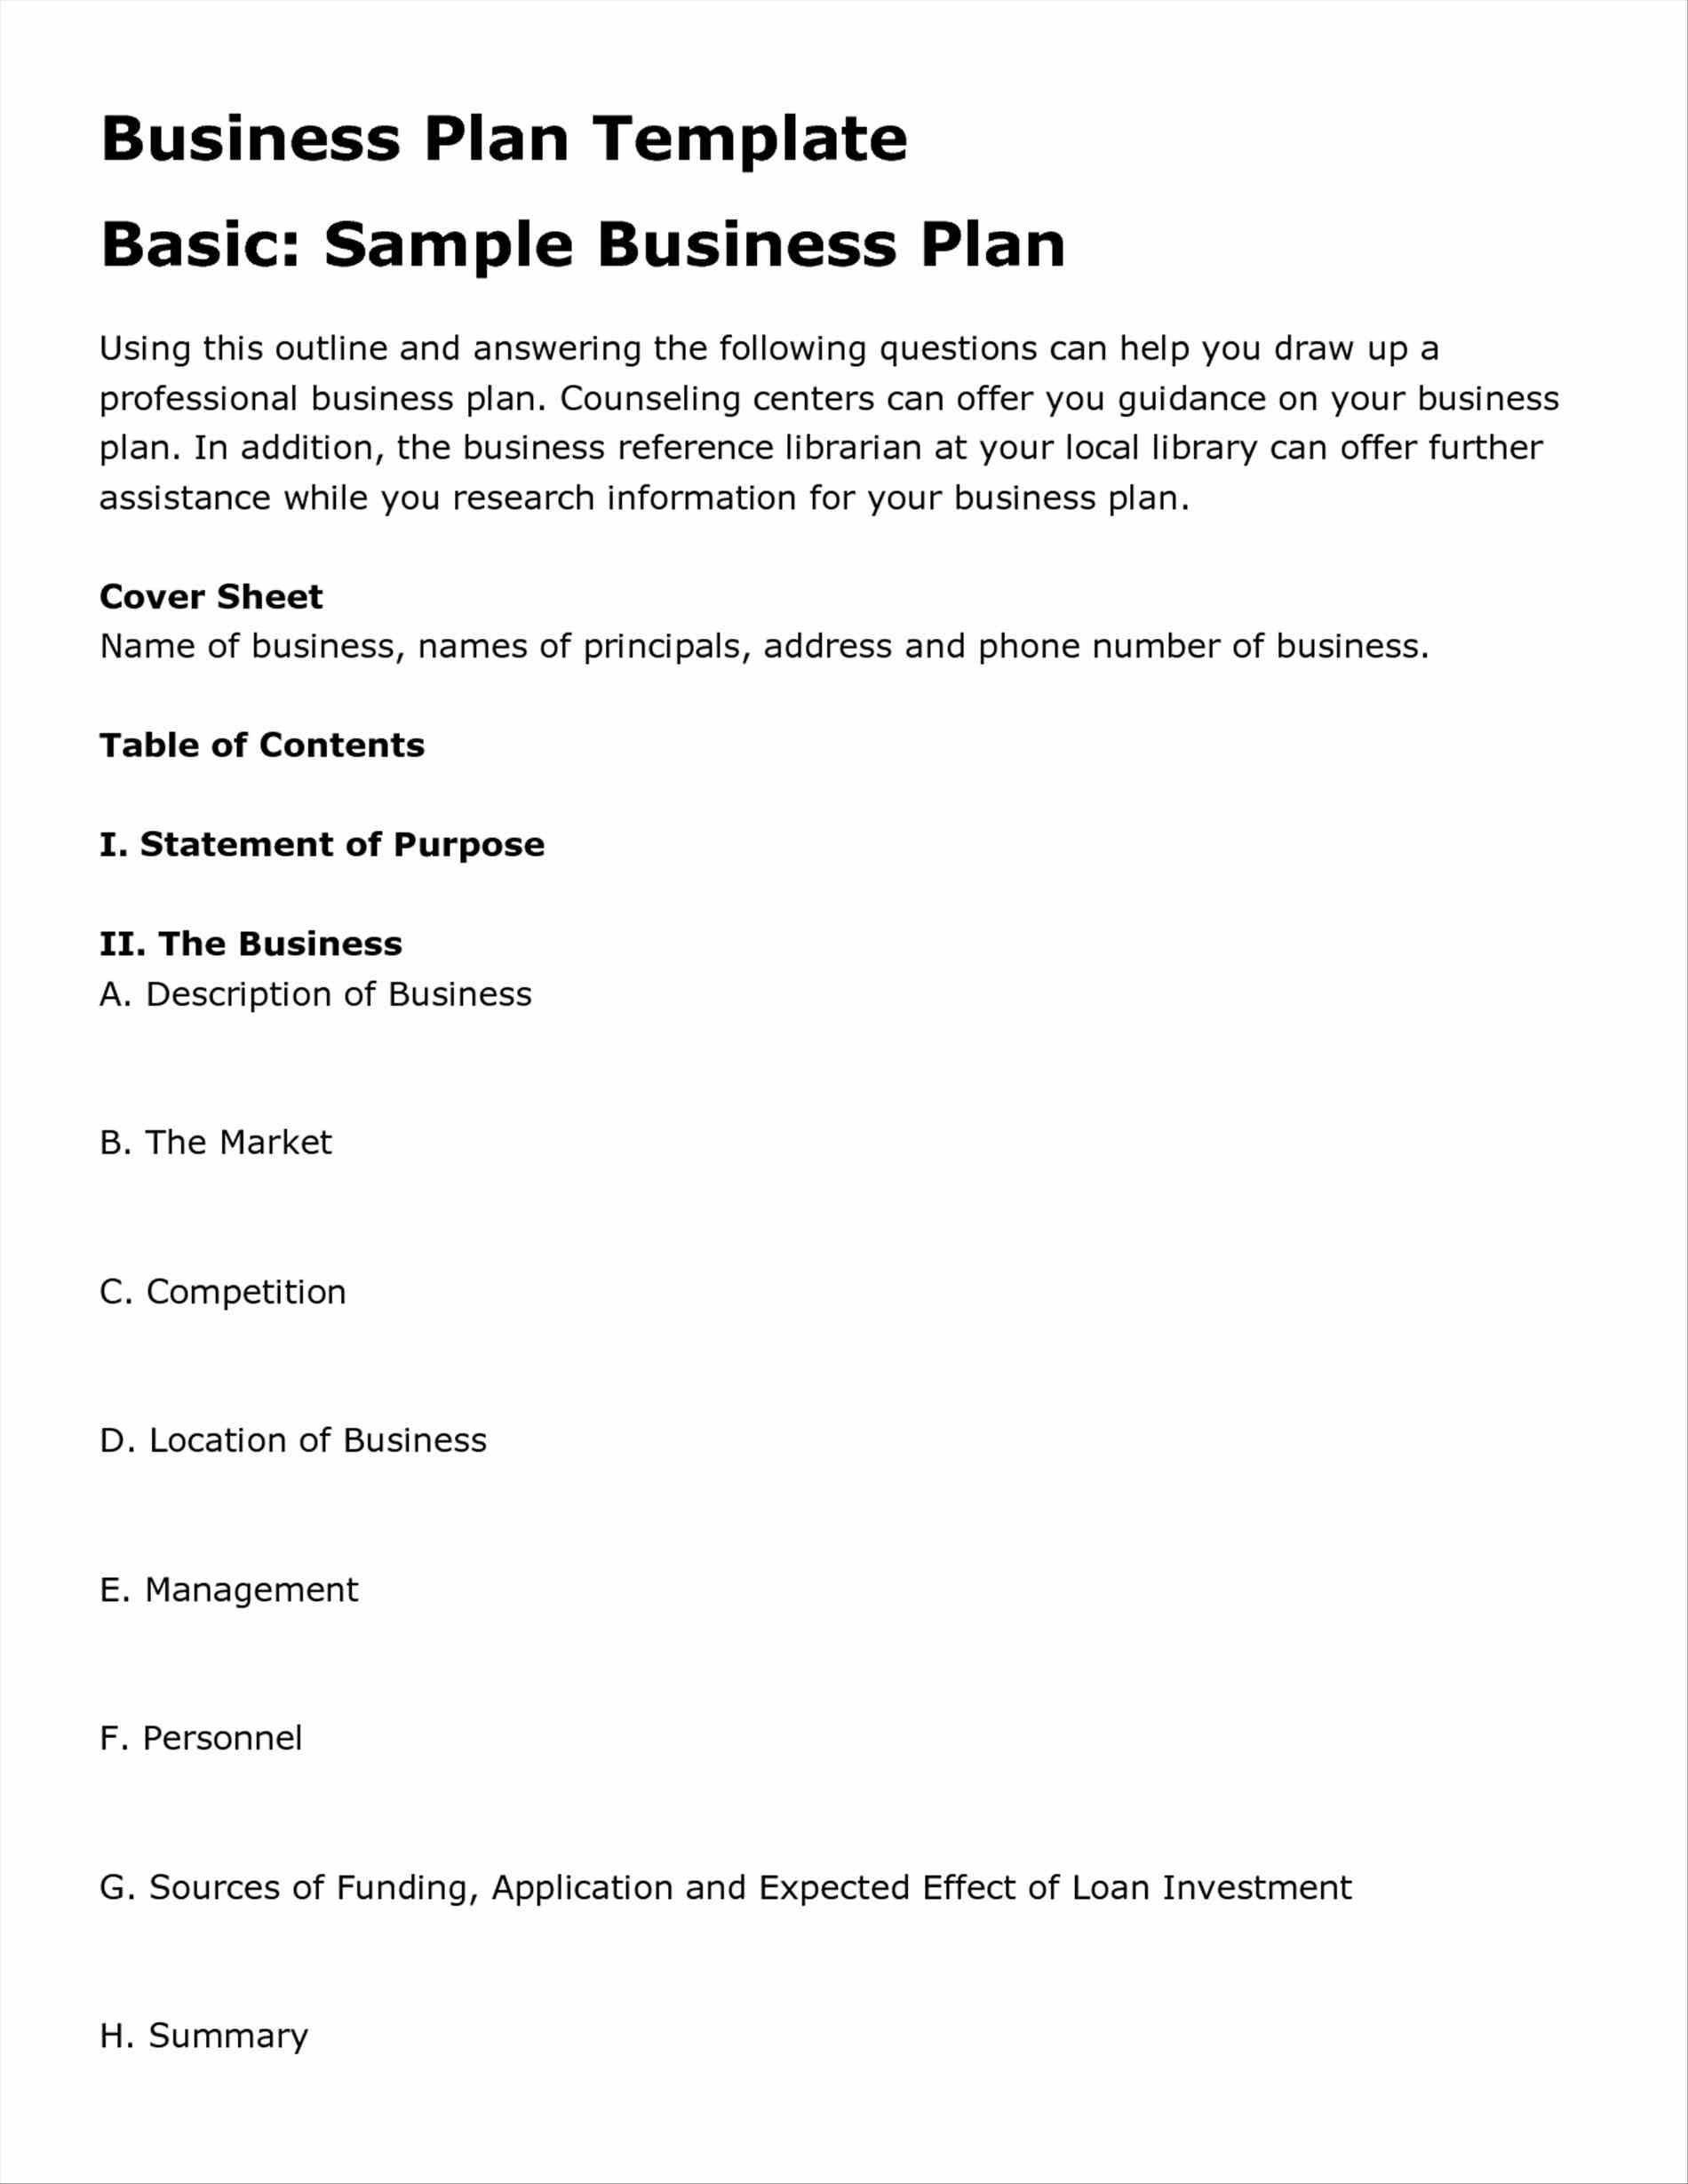 Business plan template restaurant templates in word excel pdf free business plan template restaurant templates in word excel pdf free cafe business plan template restaurant business plan templates in word excel accmission Images